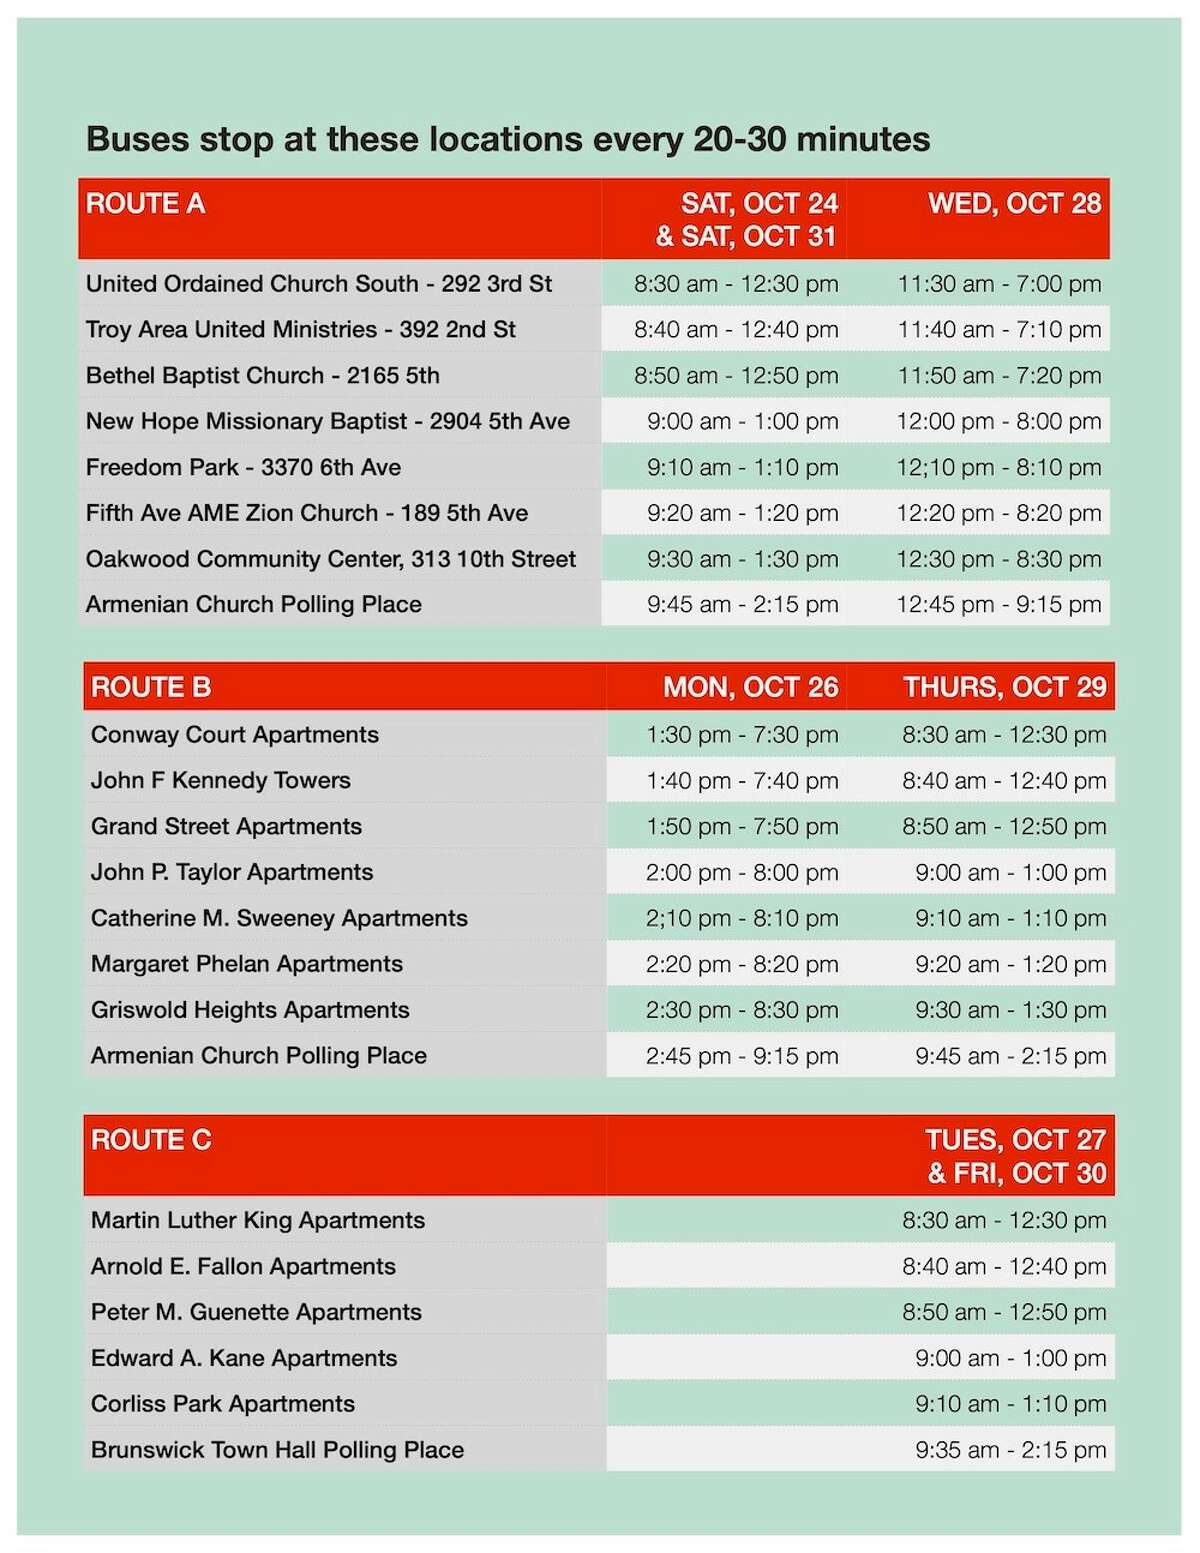 Souls to the Polls bus schedules for early voting in Troy, N.Y. on Oct. 24, 28 and 31.